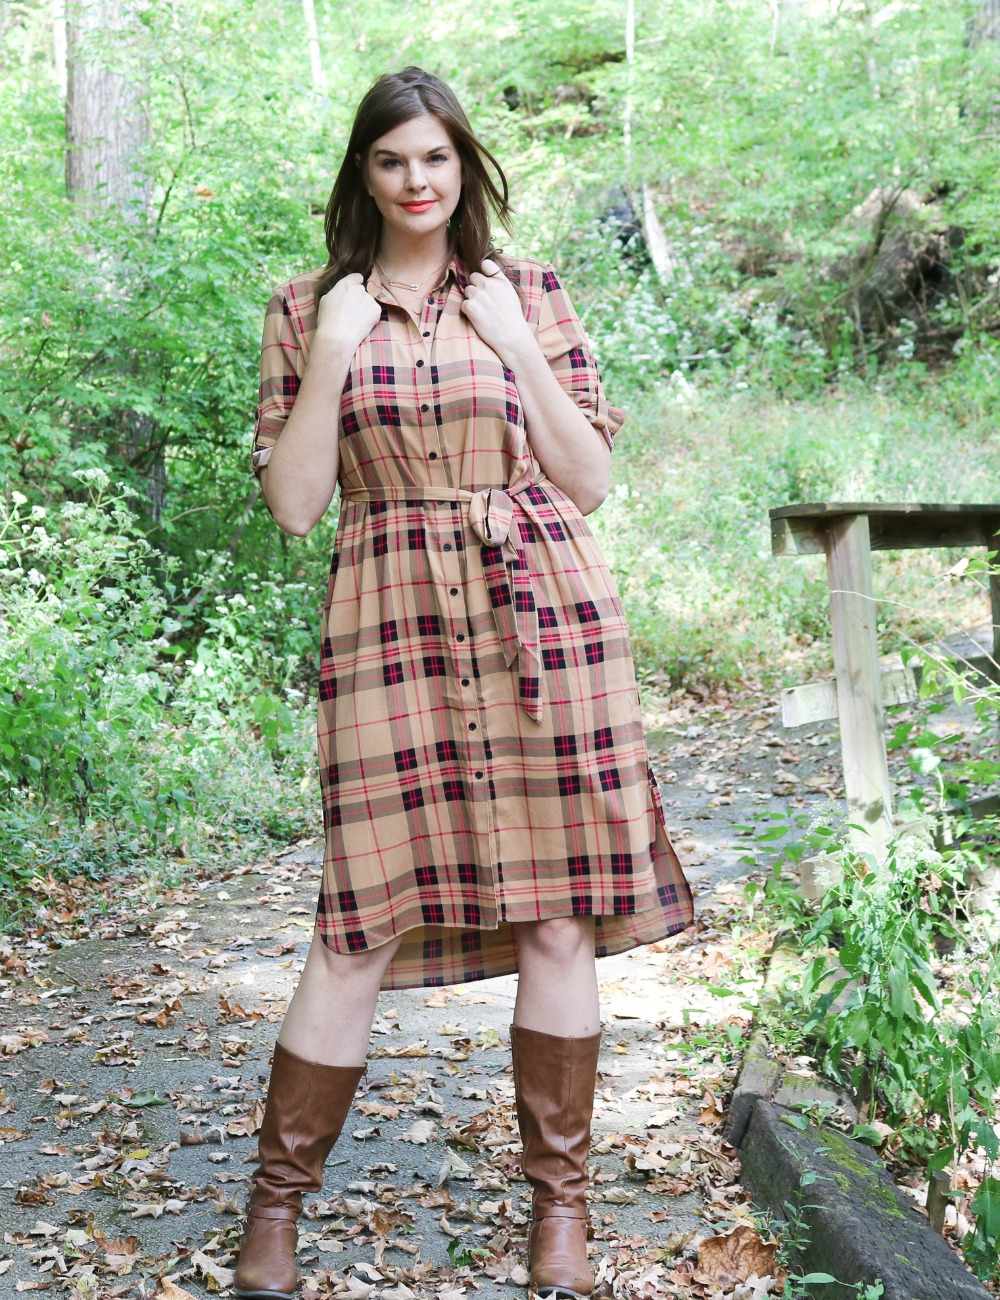 Plaid Styles for Fall 2019 I Fashion Blog DreaminLace.com #fallfashion #styleblog #styleinpso #fashionblogger #fashionista